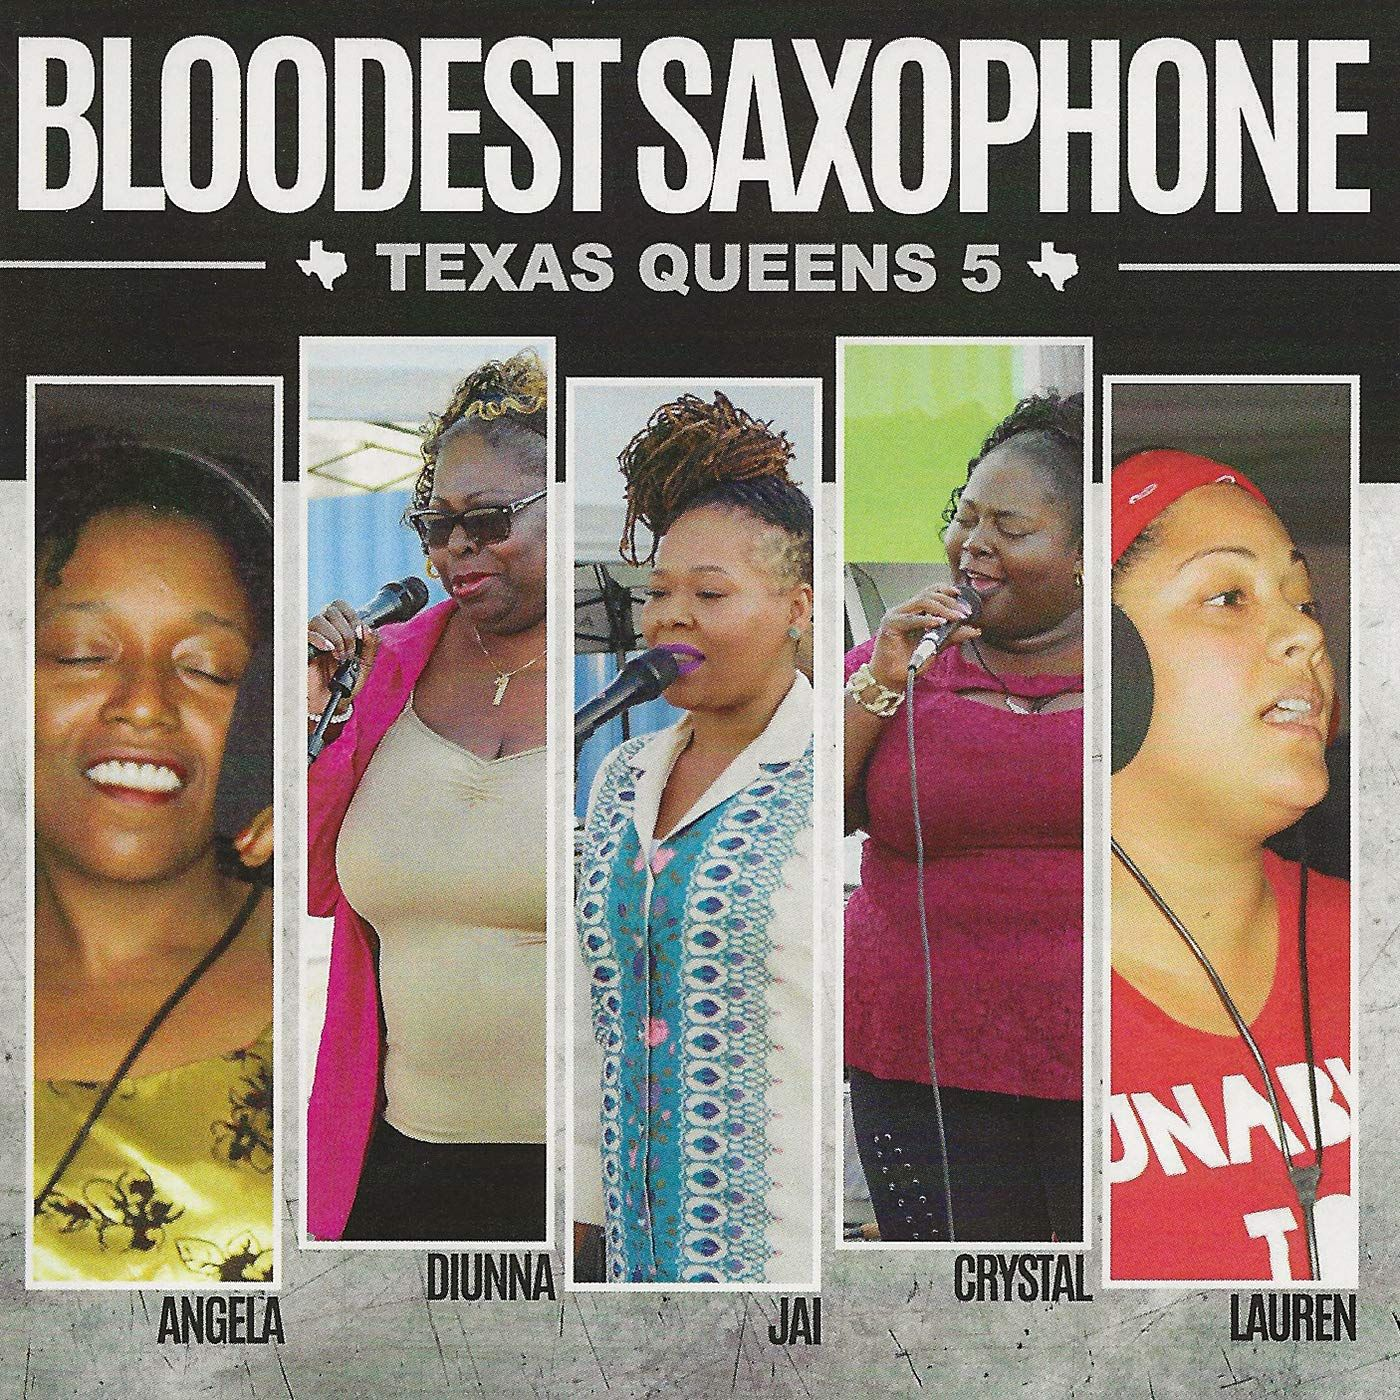 bloodest-saxophone-texas-queens-5